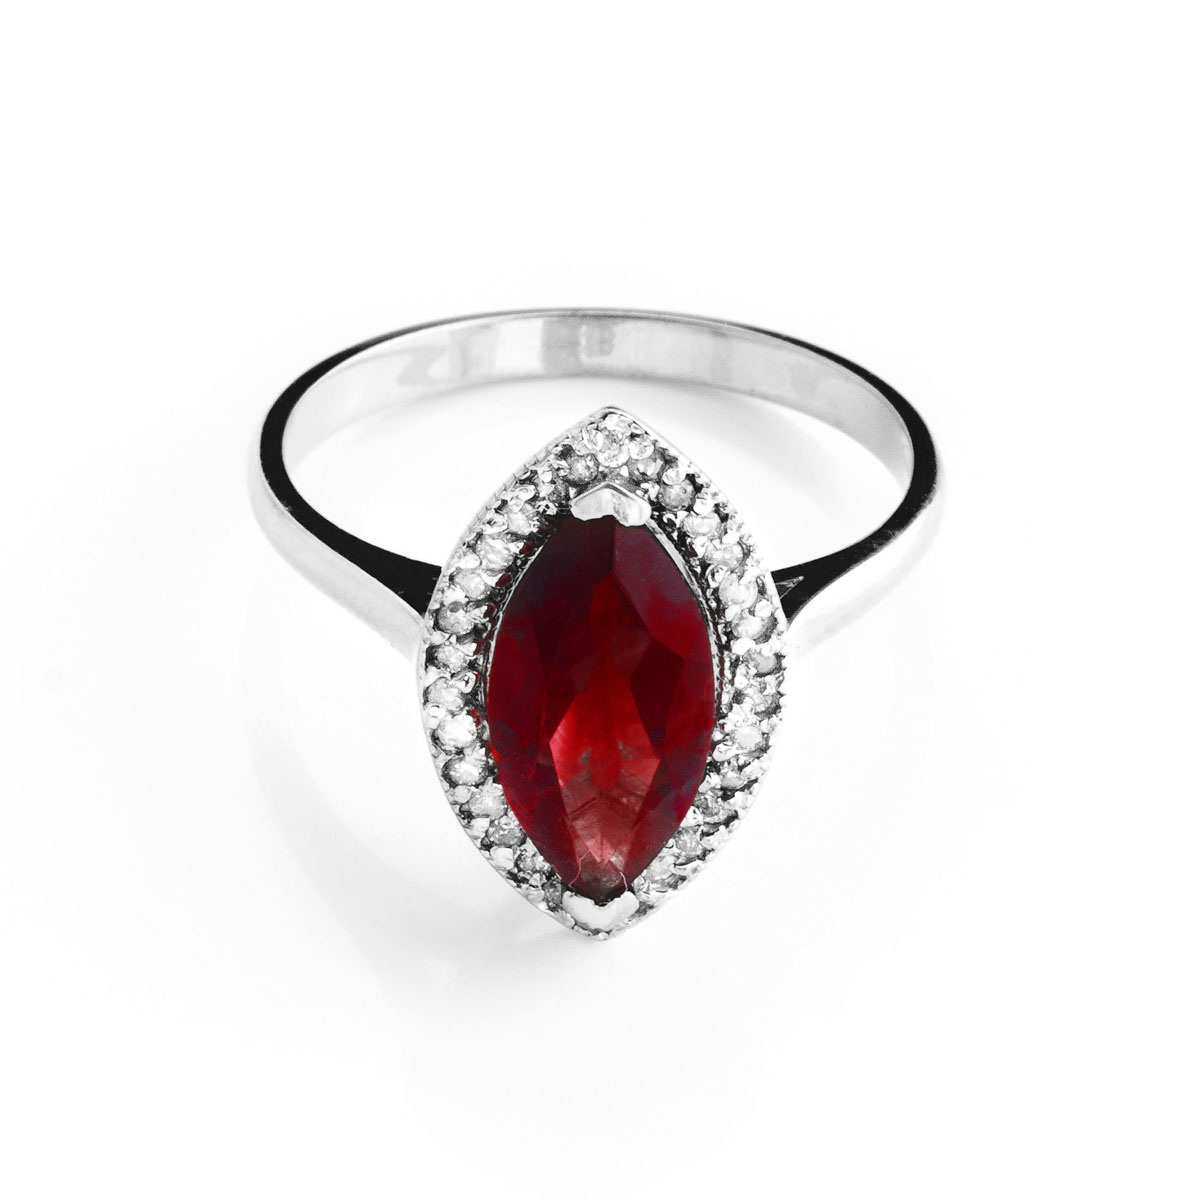 Garnet Halo Ring 2.15 ctw in 9ct White Gold